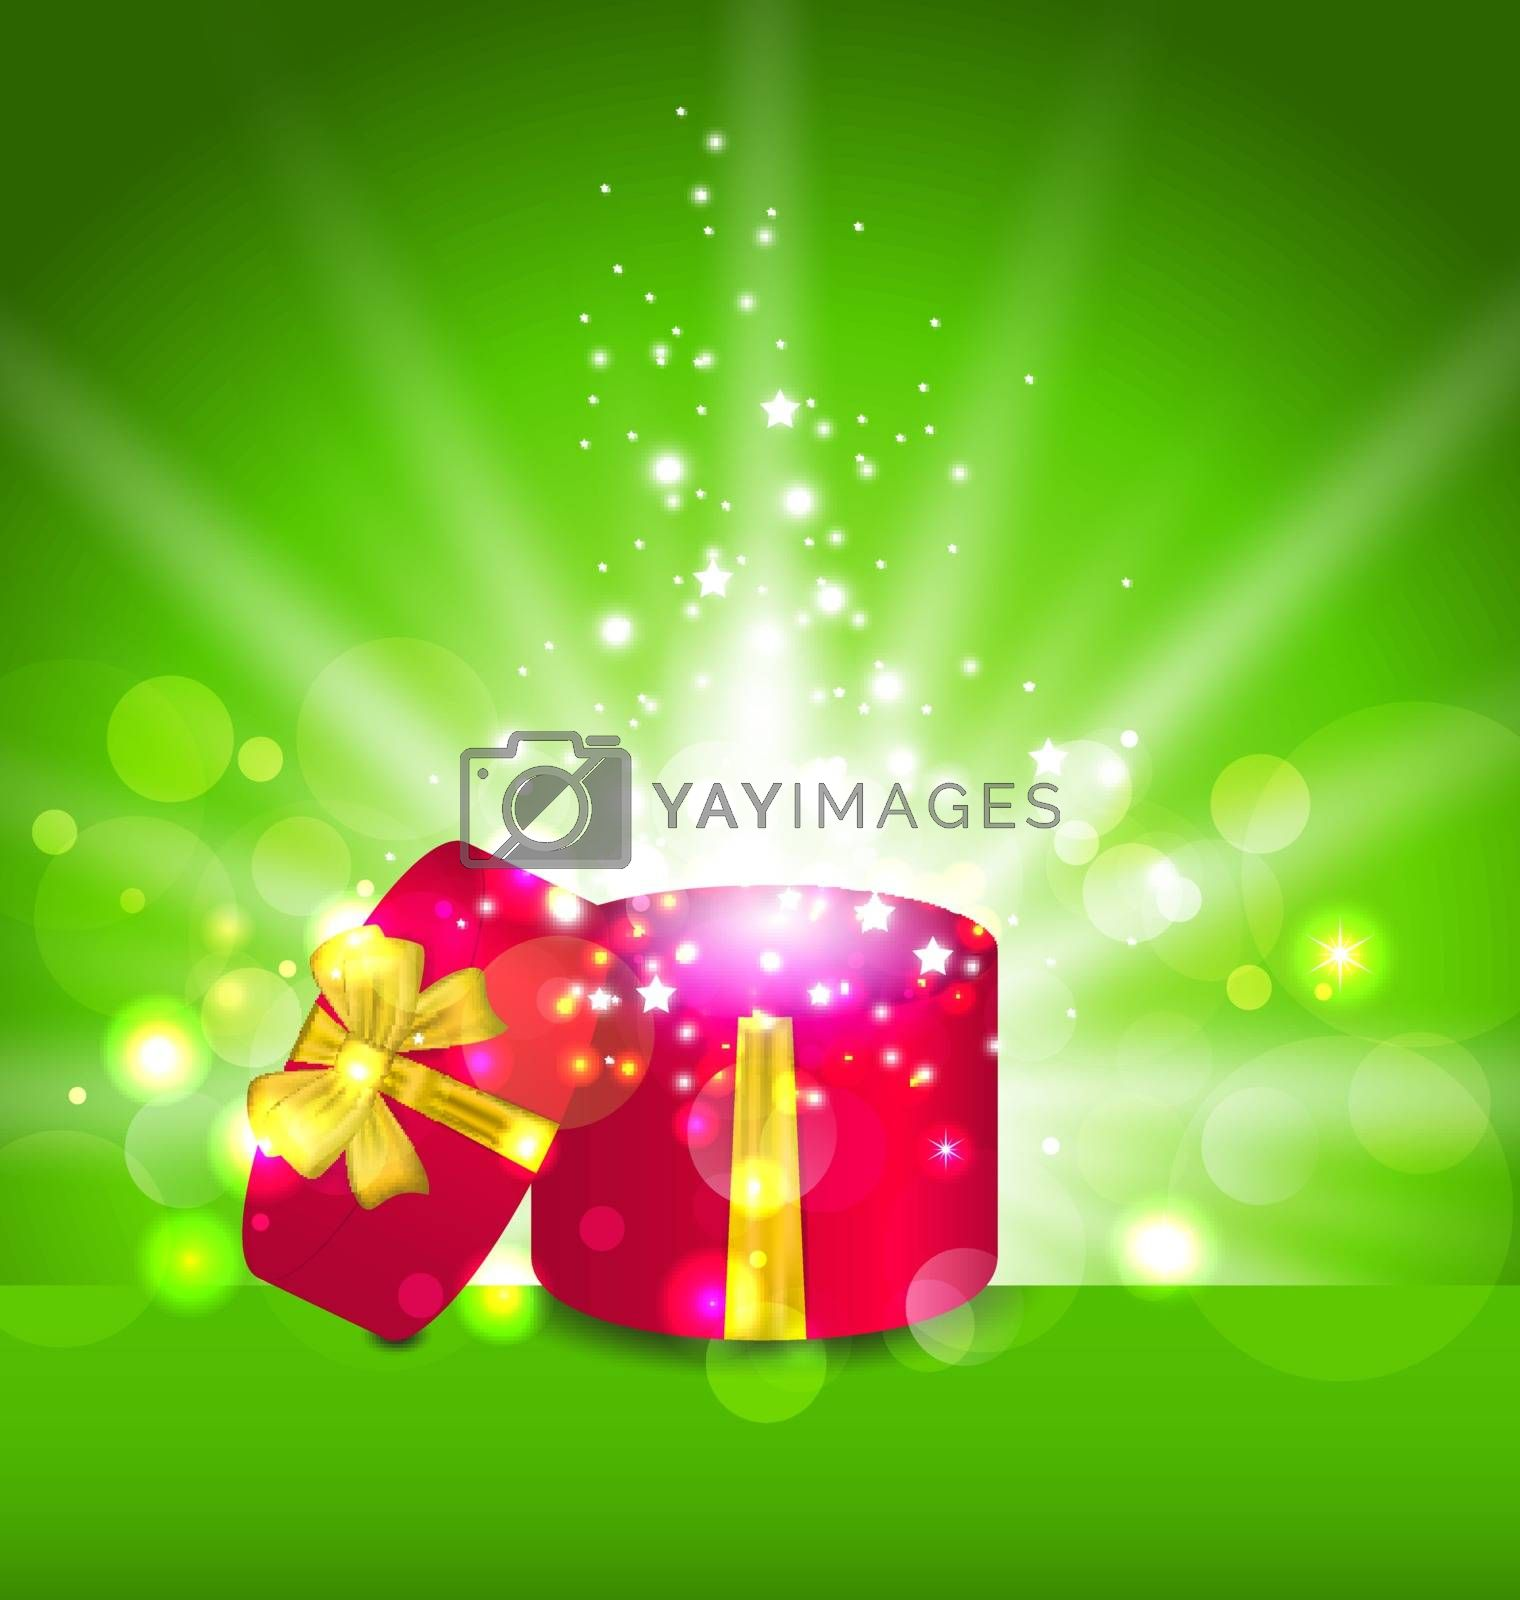 Illustration Christmas background with open round gift box - vector